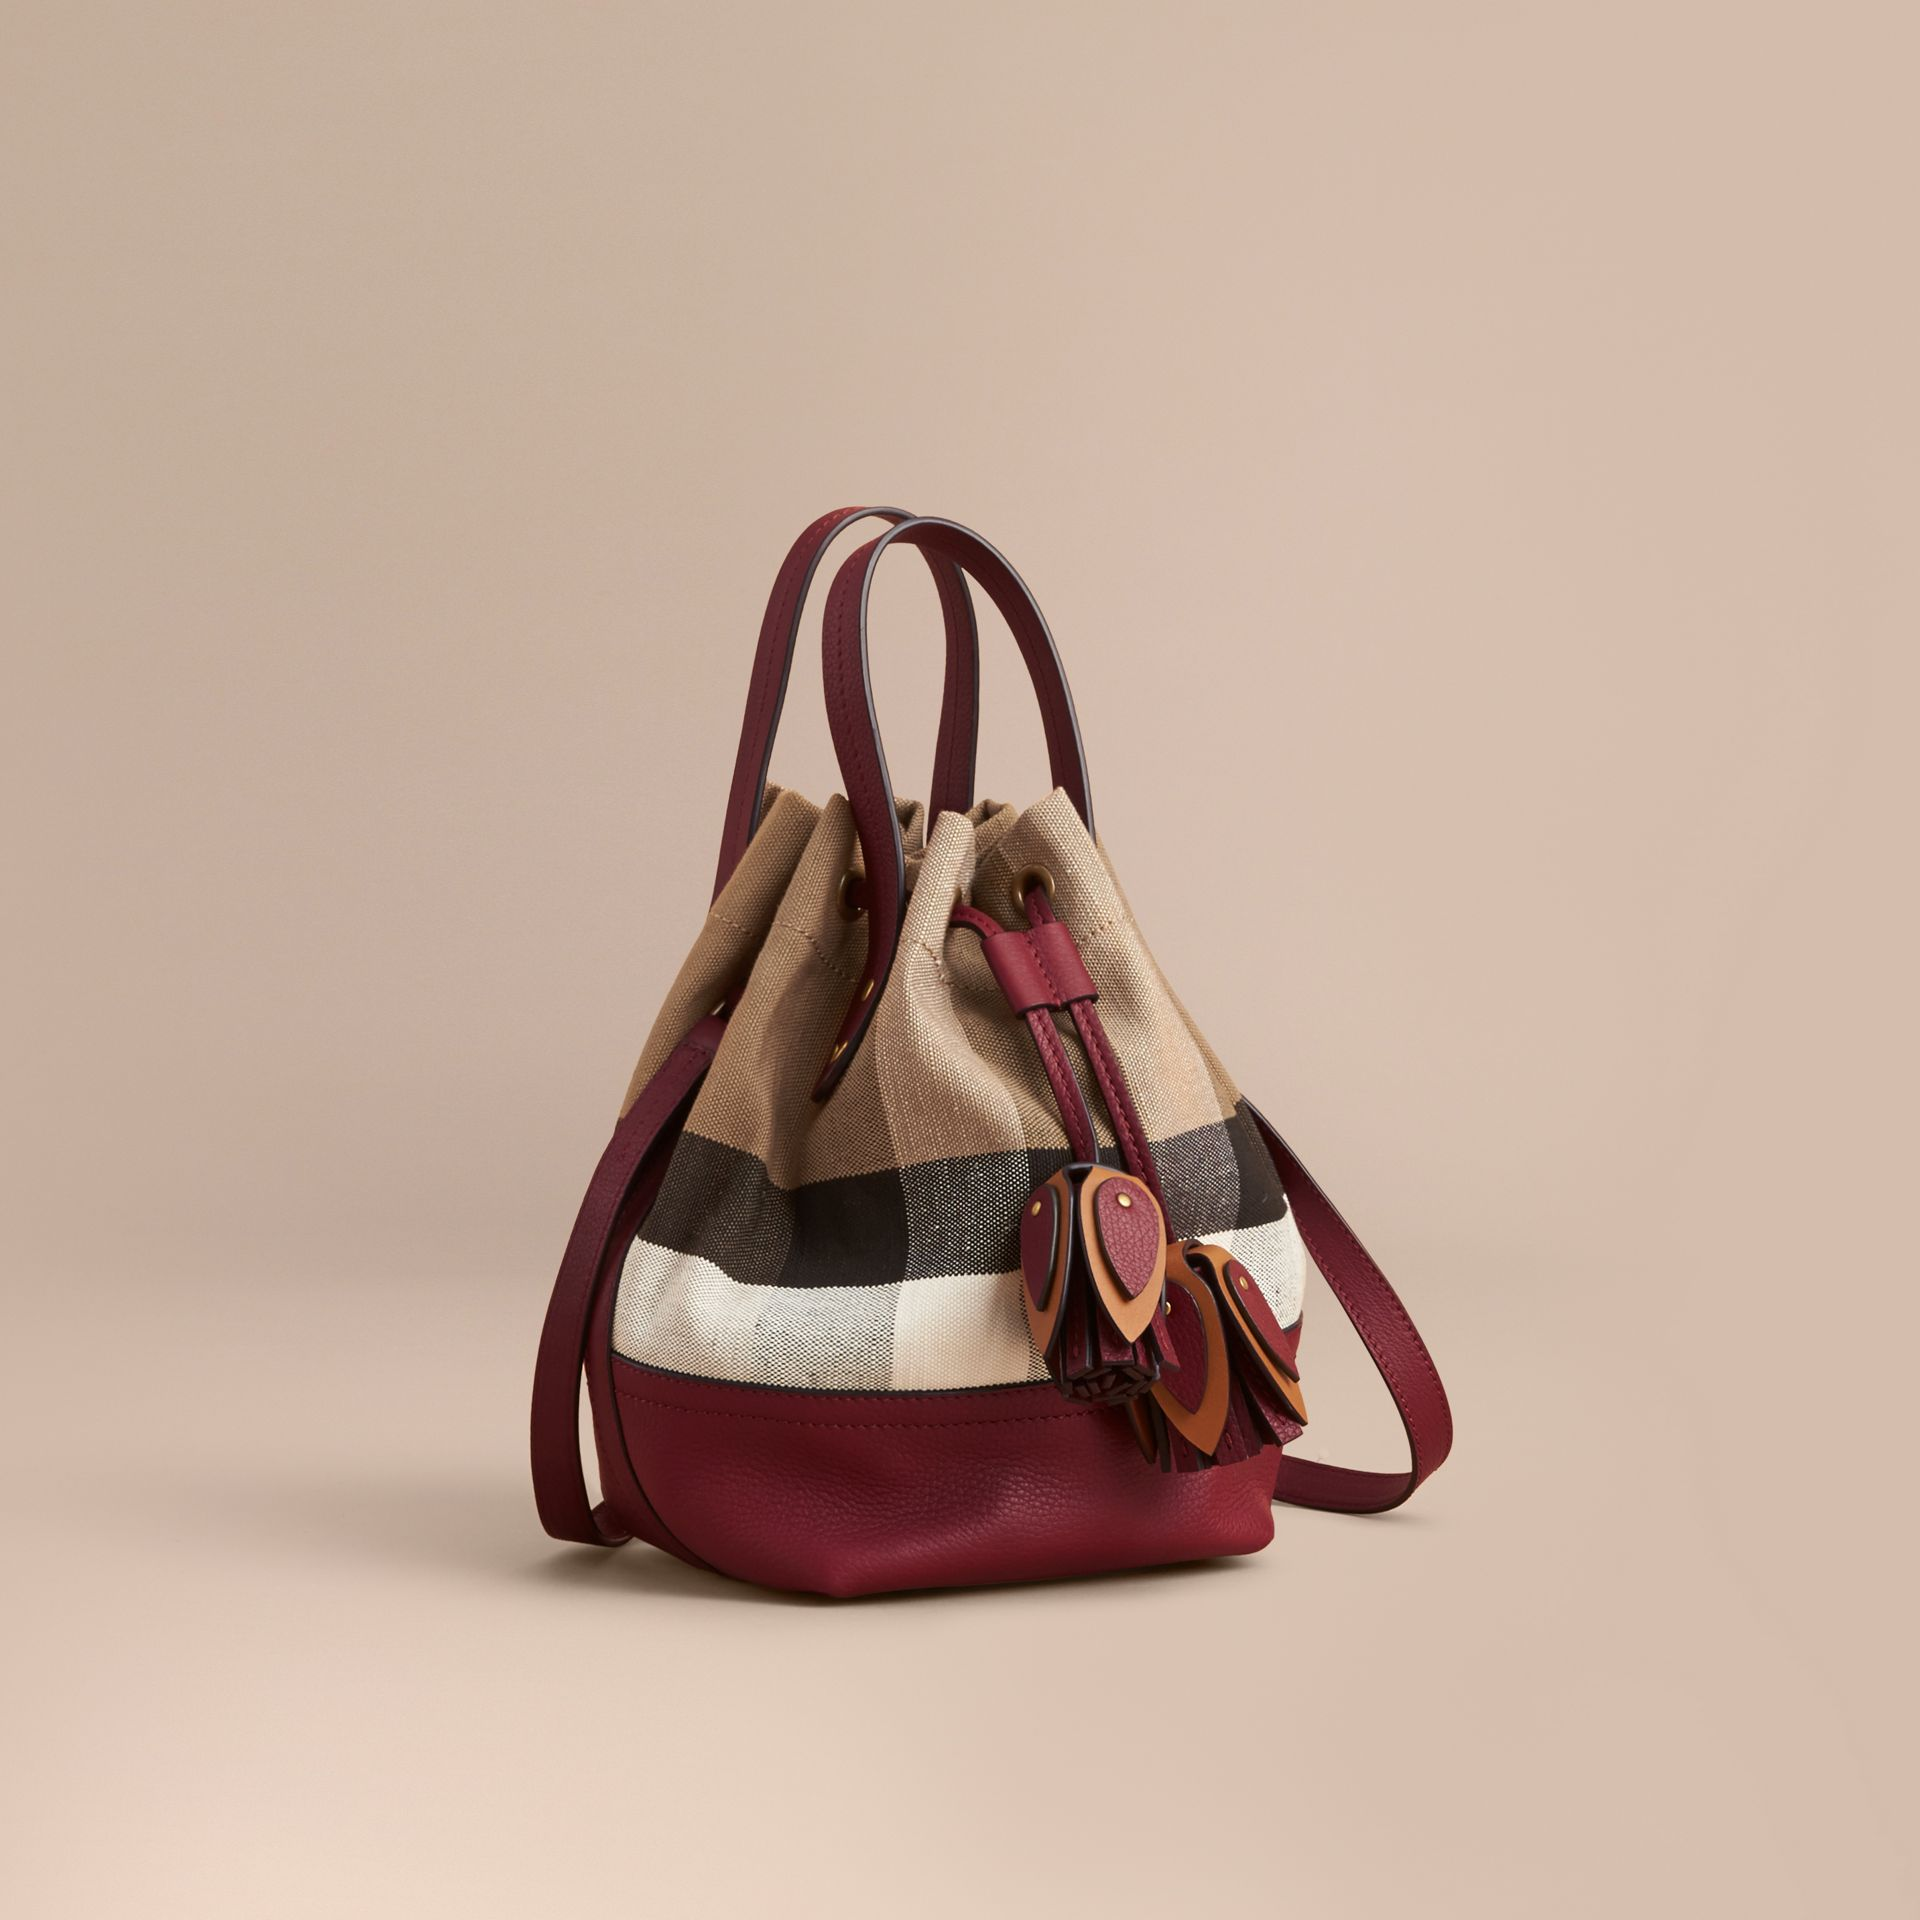 Small Canvas Check and Leather Bucket Bag in Burgundy Red - Women | Burberry - gallery image 1